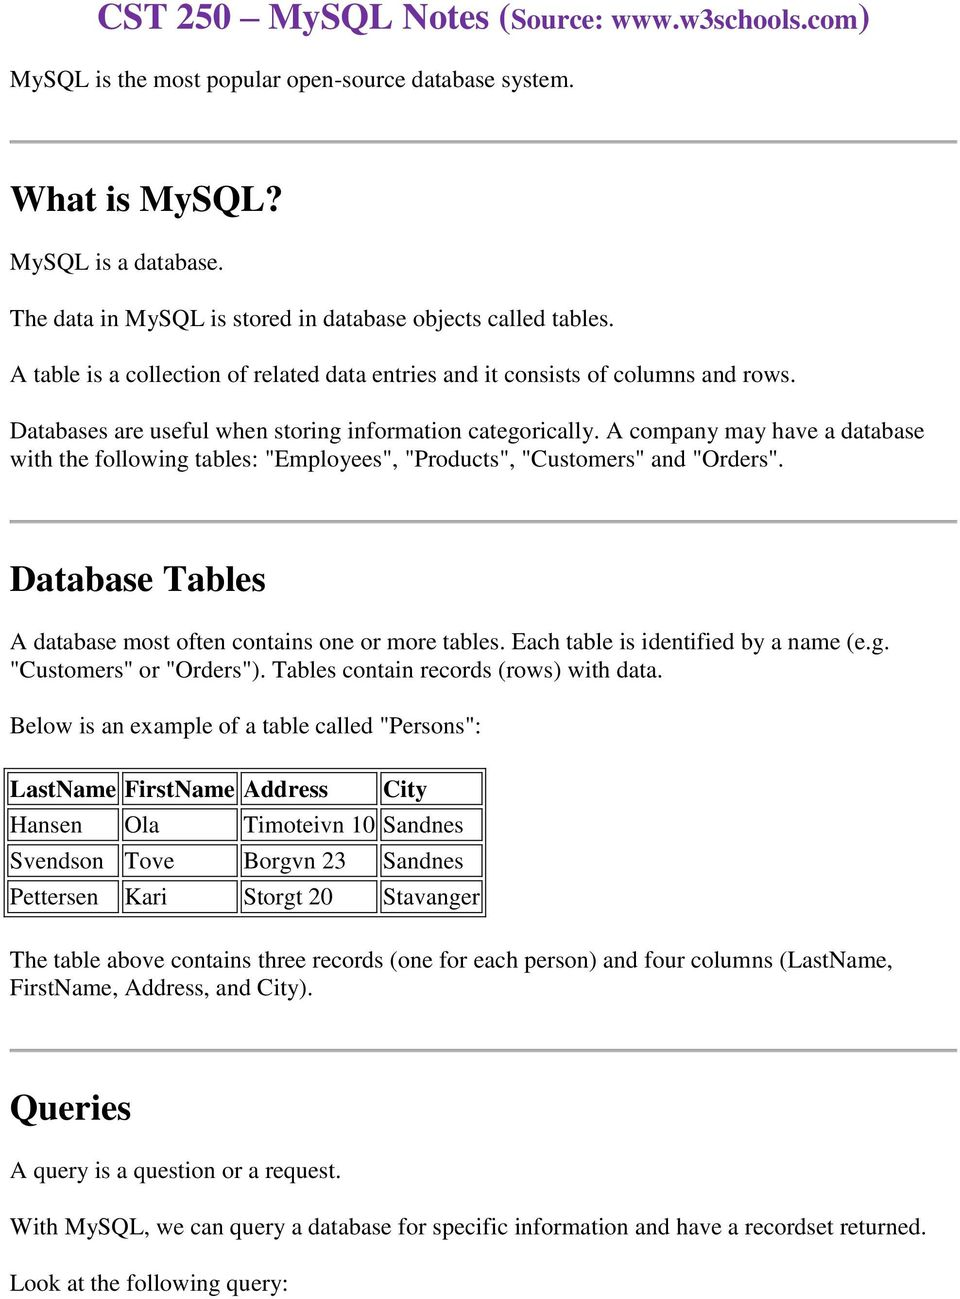 A table is a collection of related data entries and it consists of